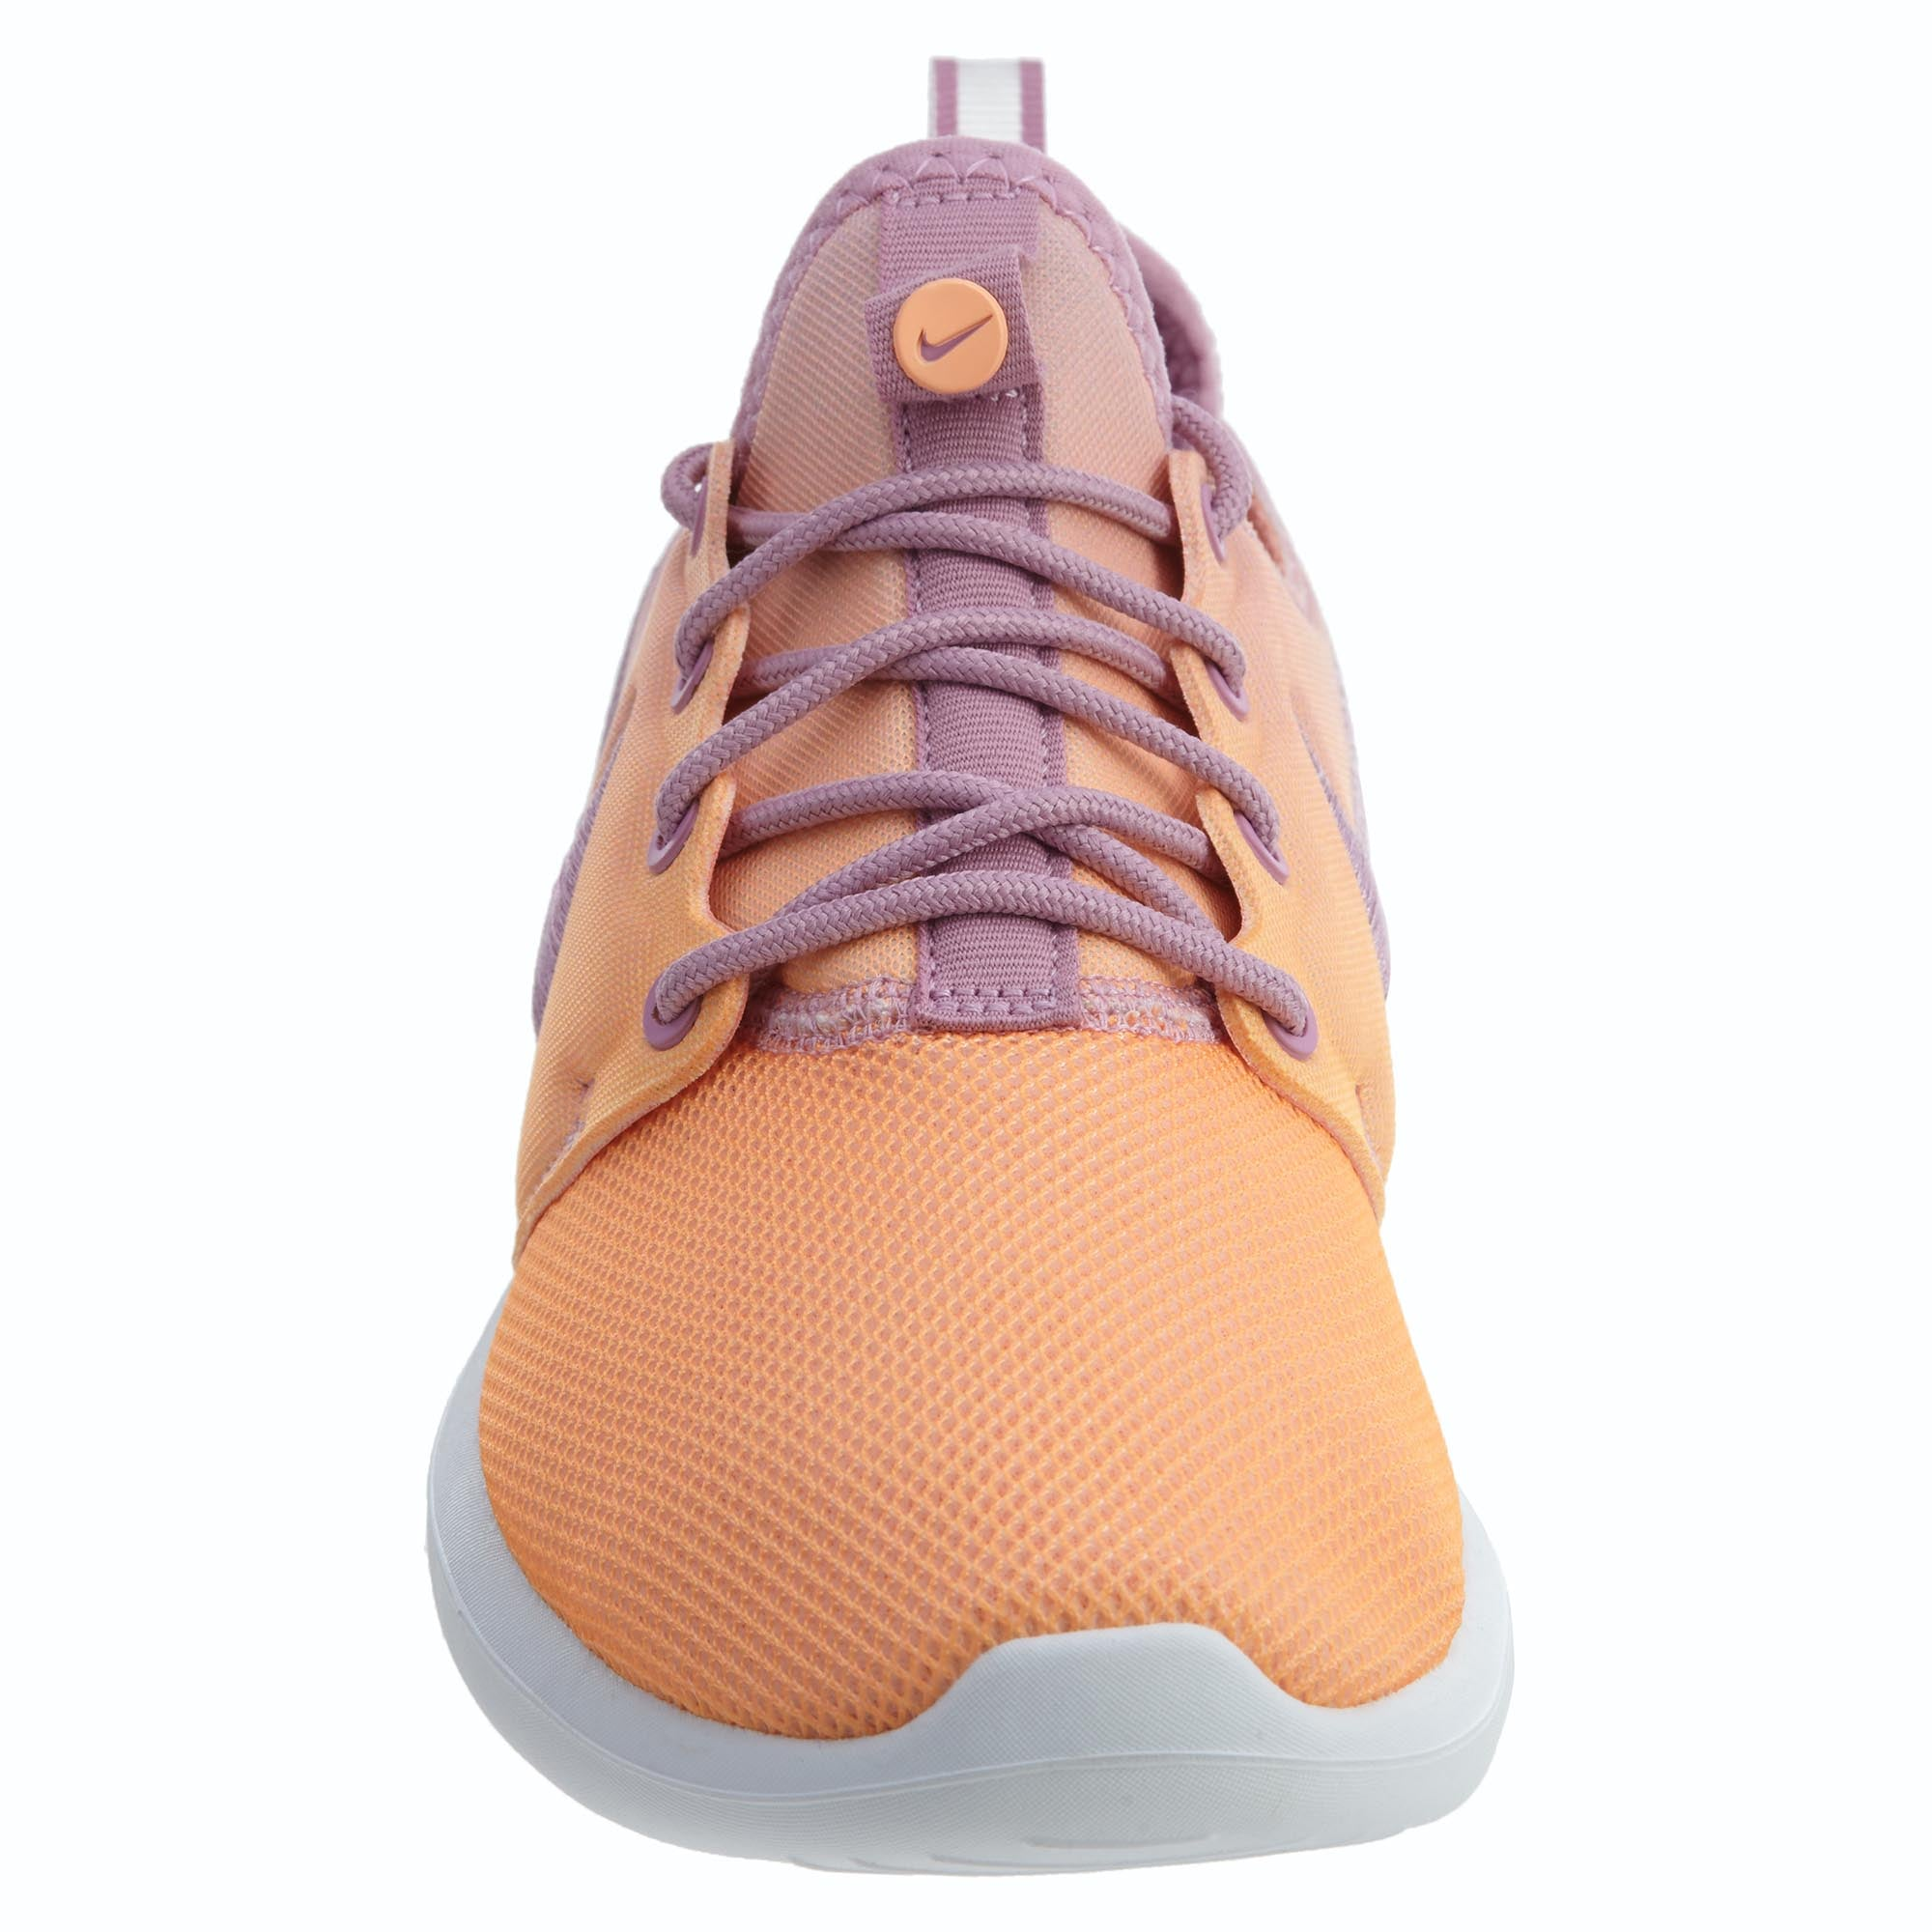 Nike Roshe Two Br Womens Style : 896445